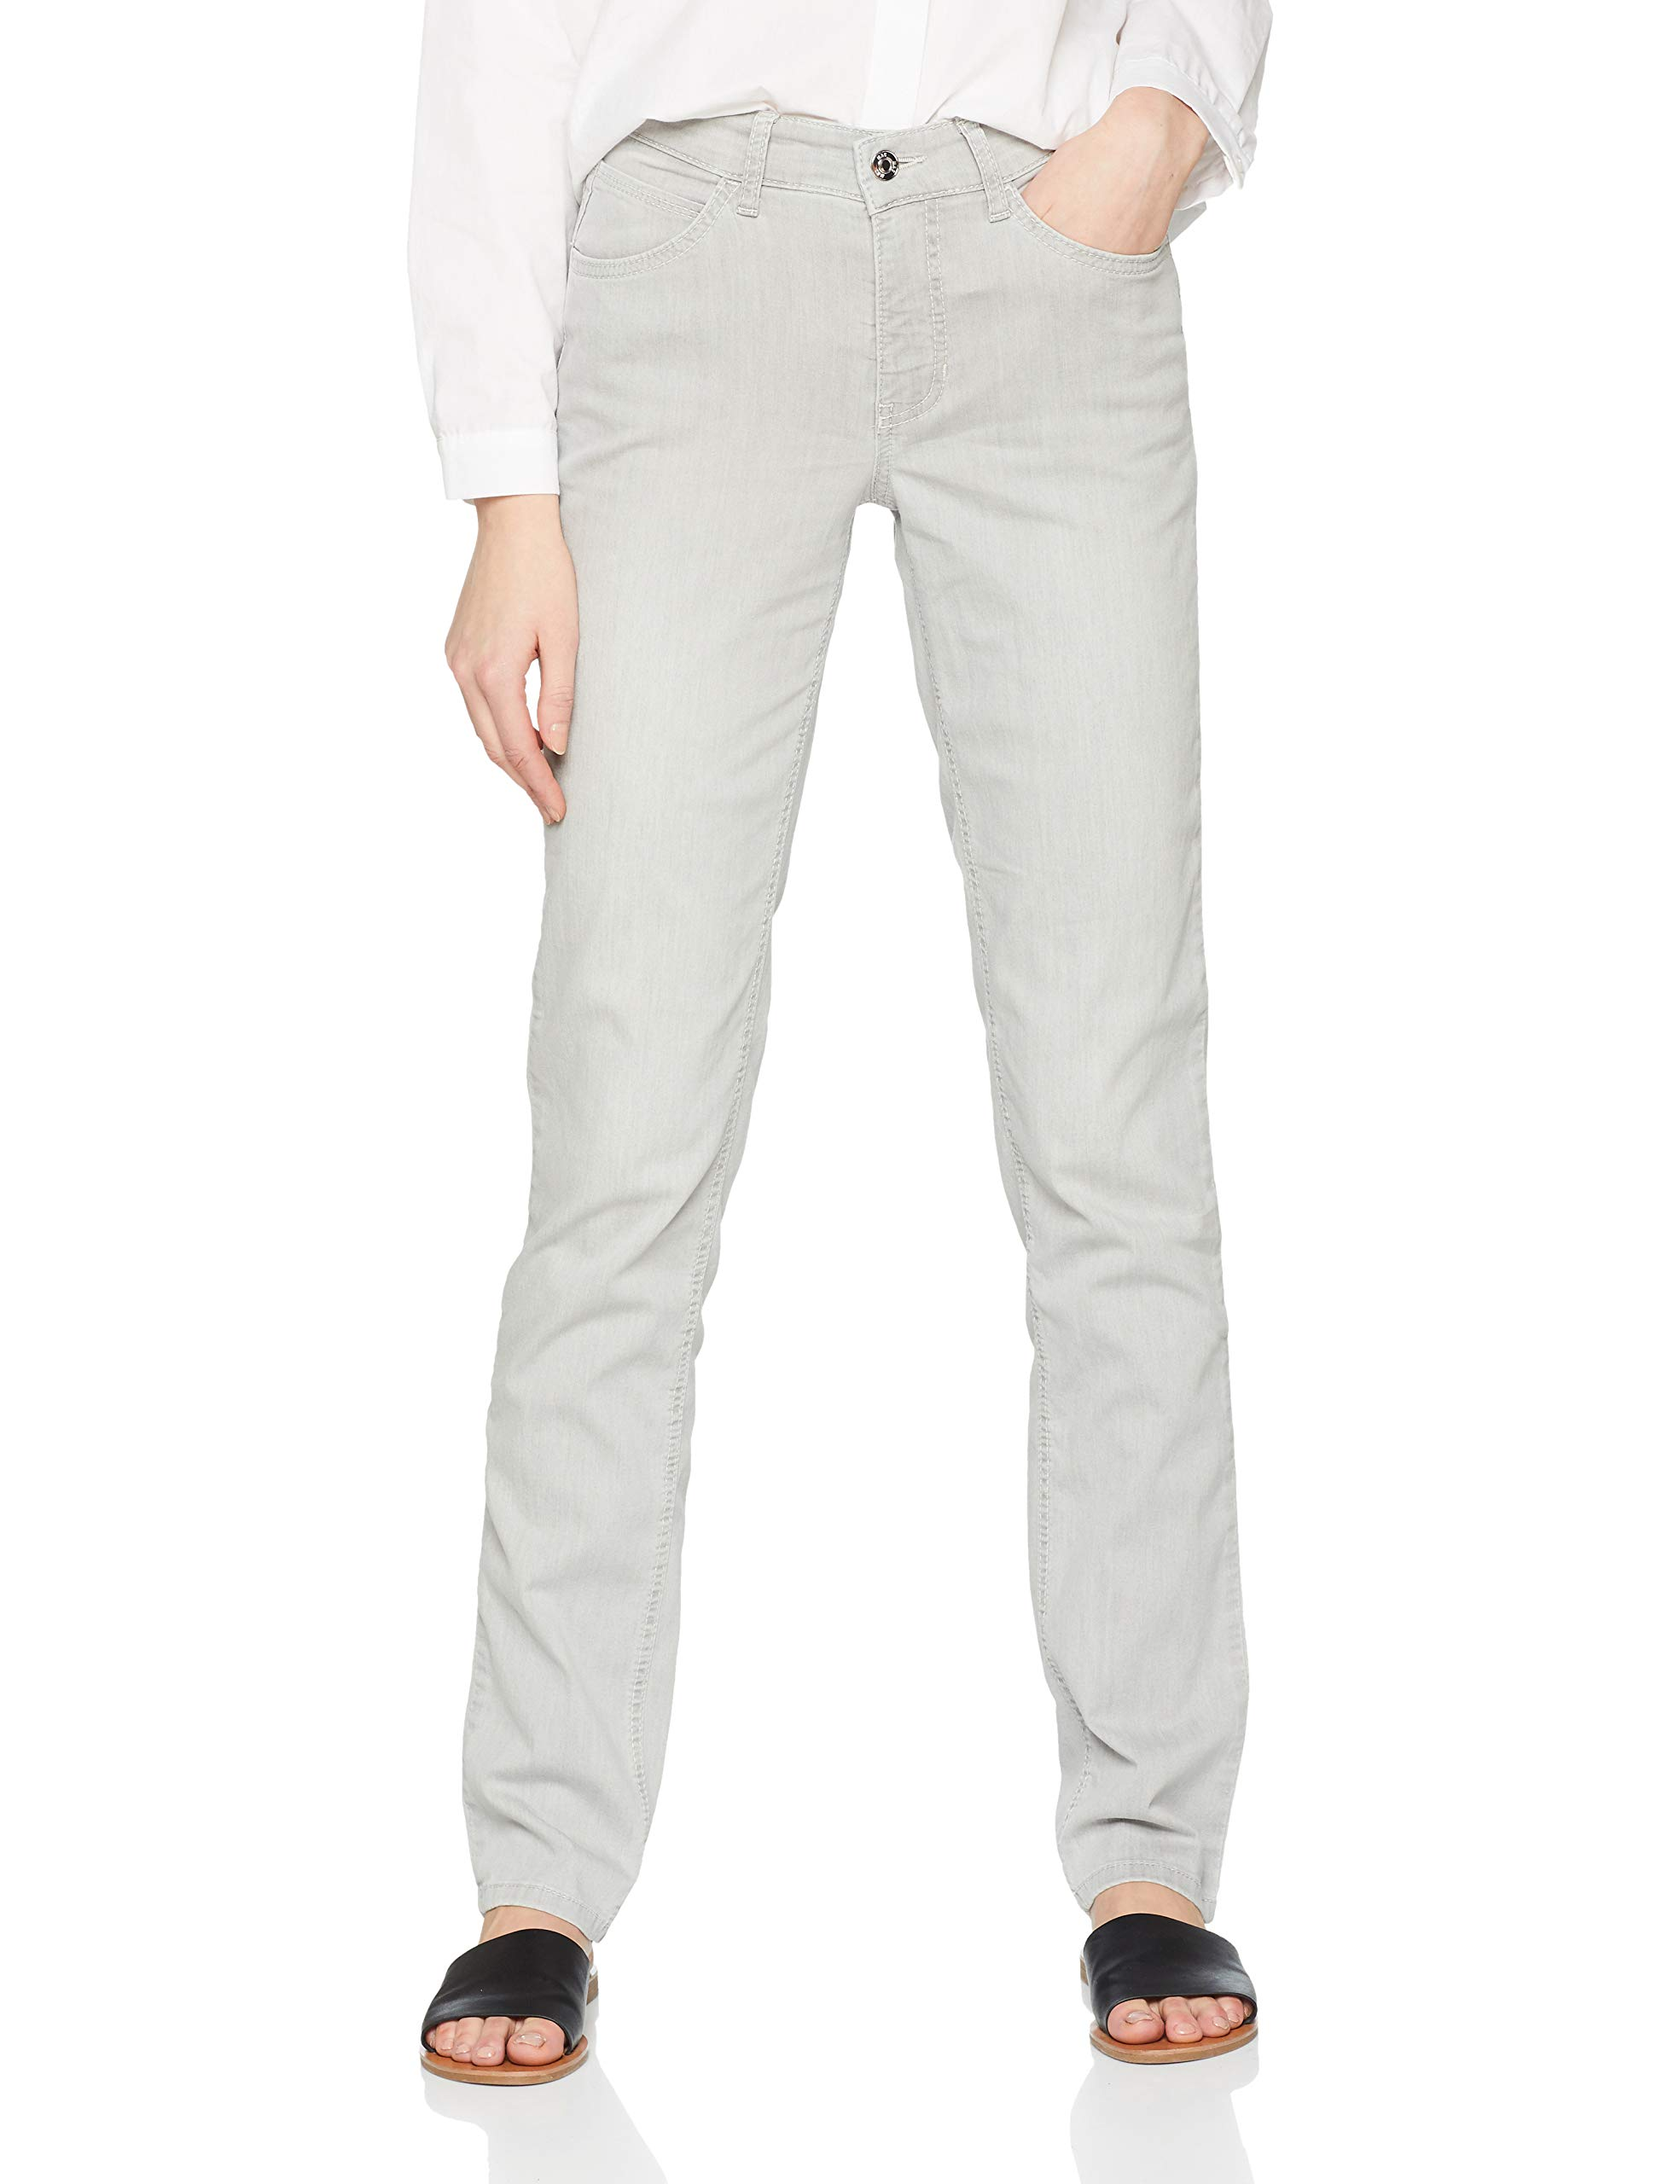 Jeans Jean D314W32 Fabricant42 Grey Tools Melanie l30taille 30Femme DroitGrissilver Wash Mac 9IYWE2HD